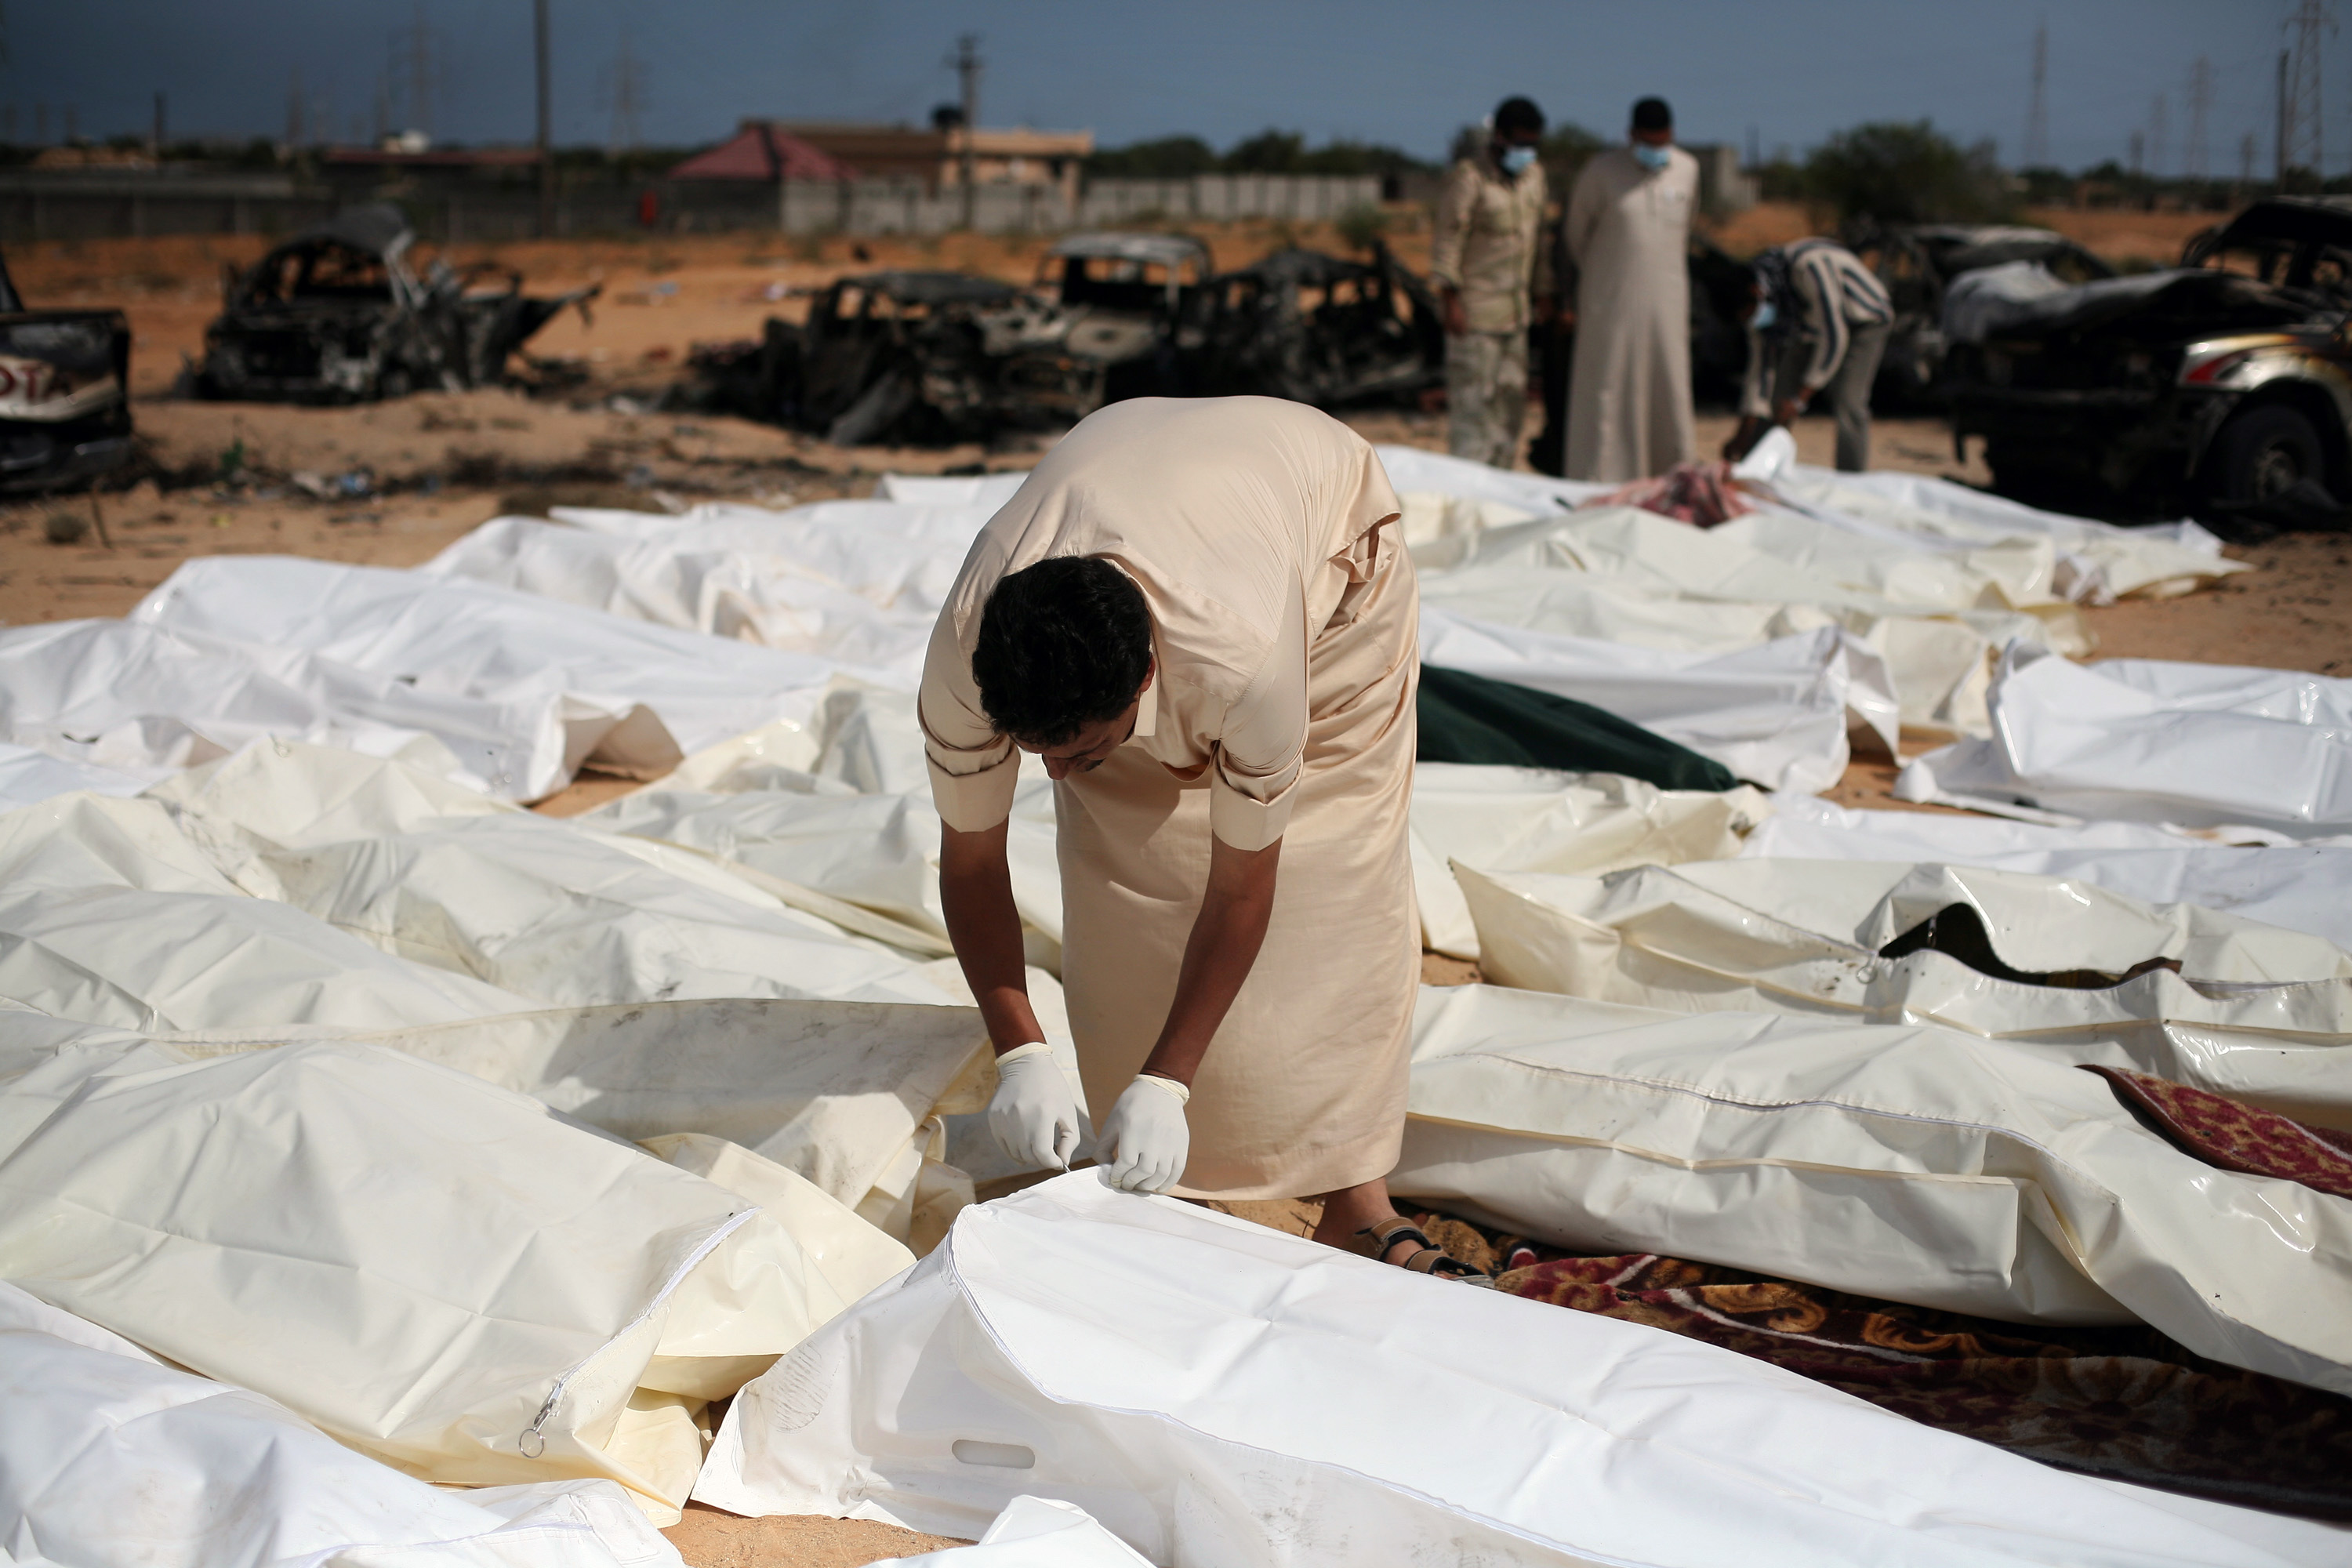 FILE - In this Oct. 22, 2011 file photo, a revolutionary fighter zips a body bag containing one of nearly 30 bodies of Gadhafi loyalists killed in Sirte, Libya, during the city's fall. Libyan rebels appear to have